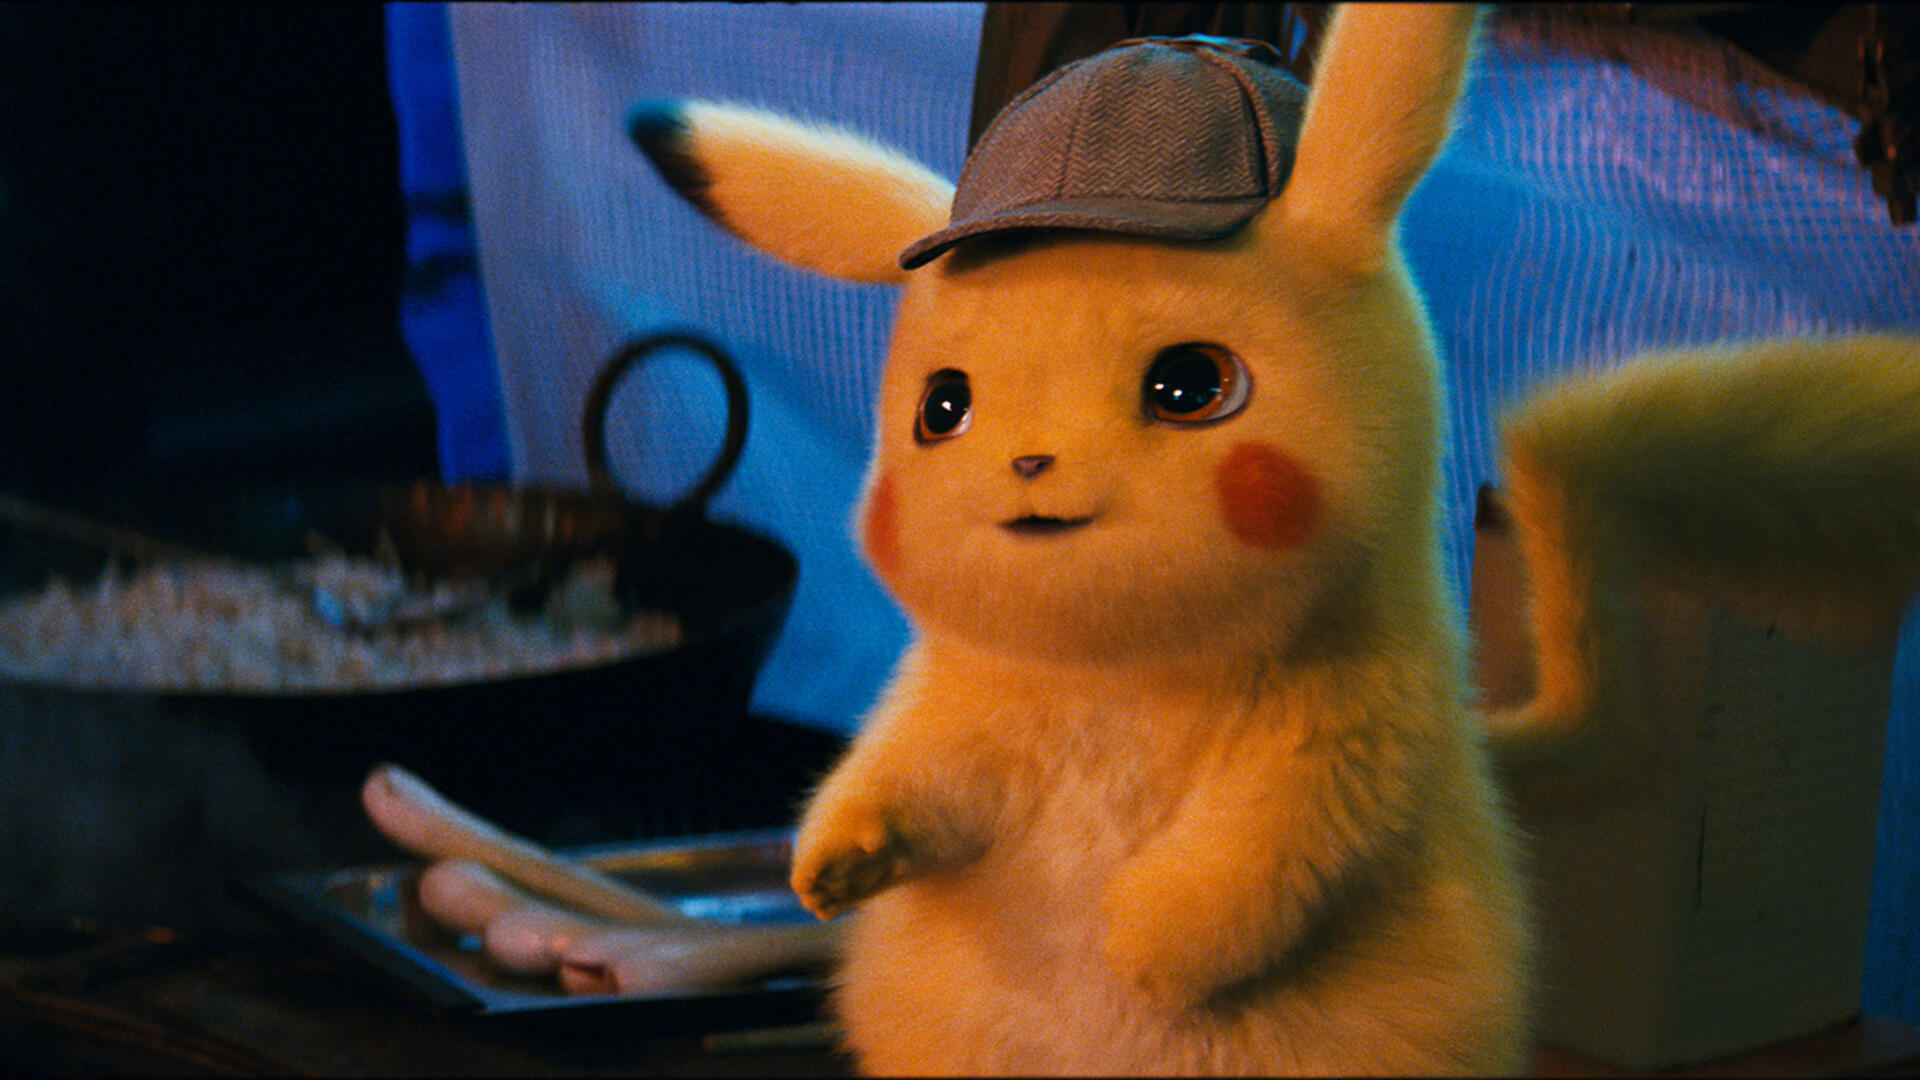 Detective Pikachu Turned Bill Nighy Into a Major Fan, And He Even Has a Favorite Pokemon Now